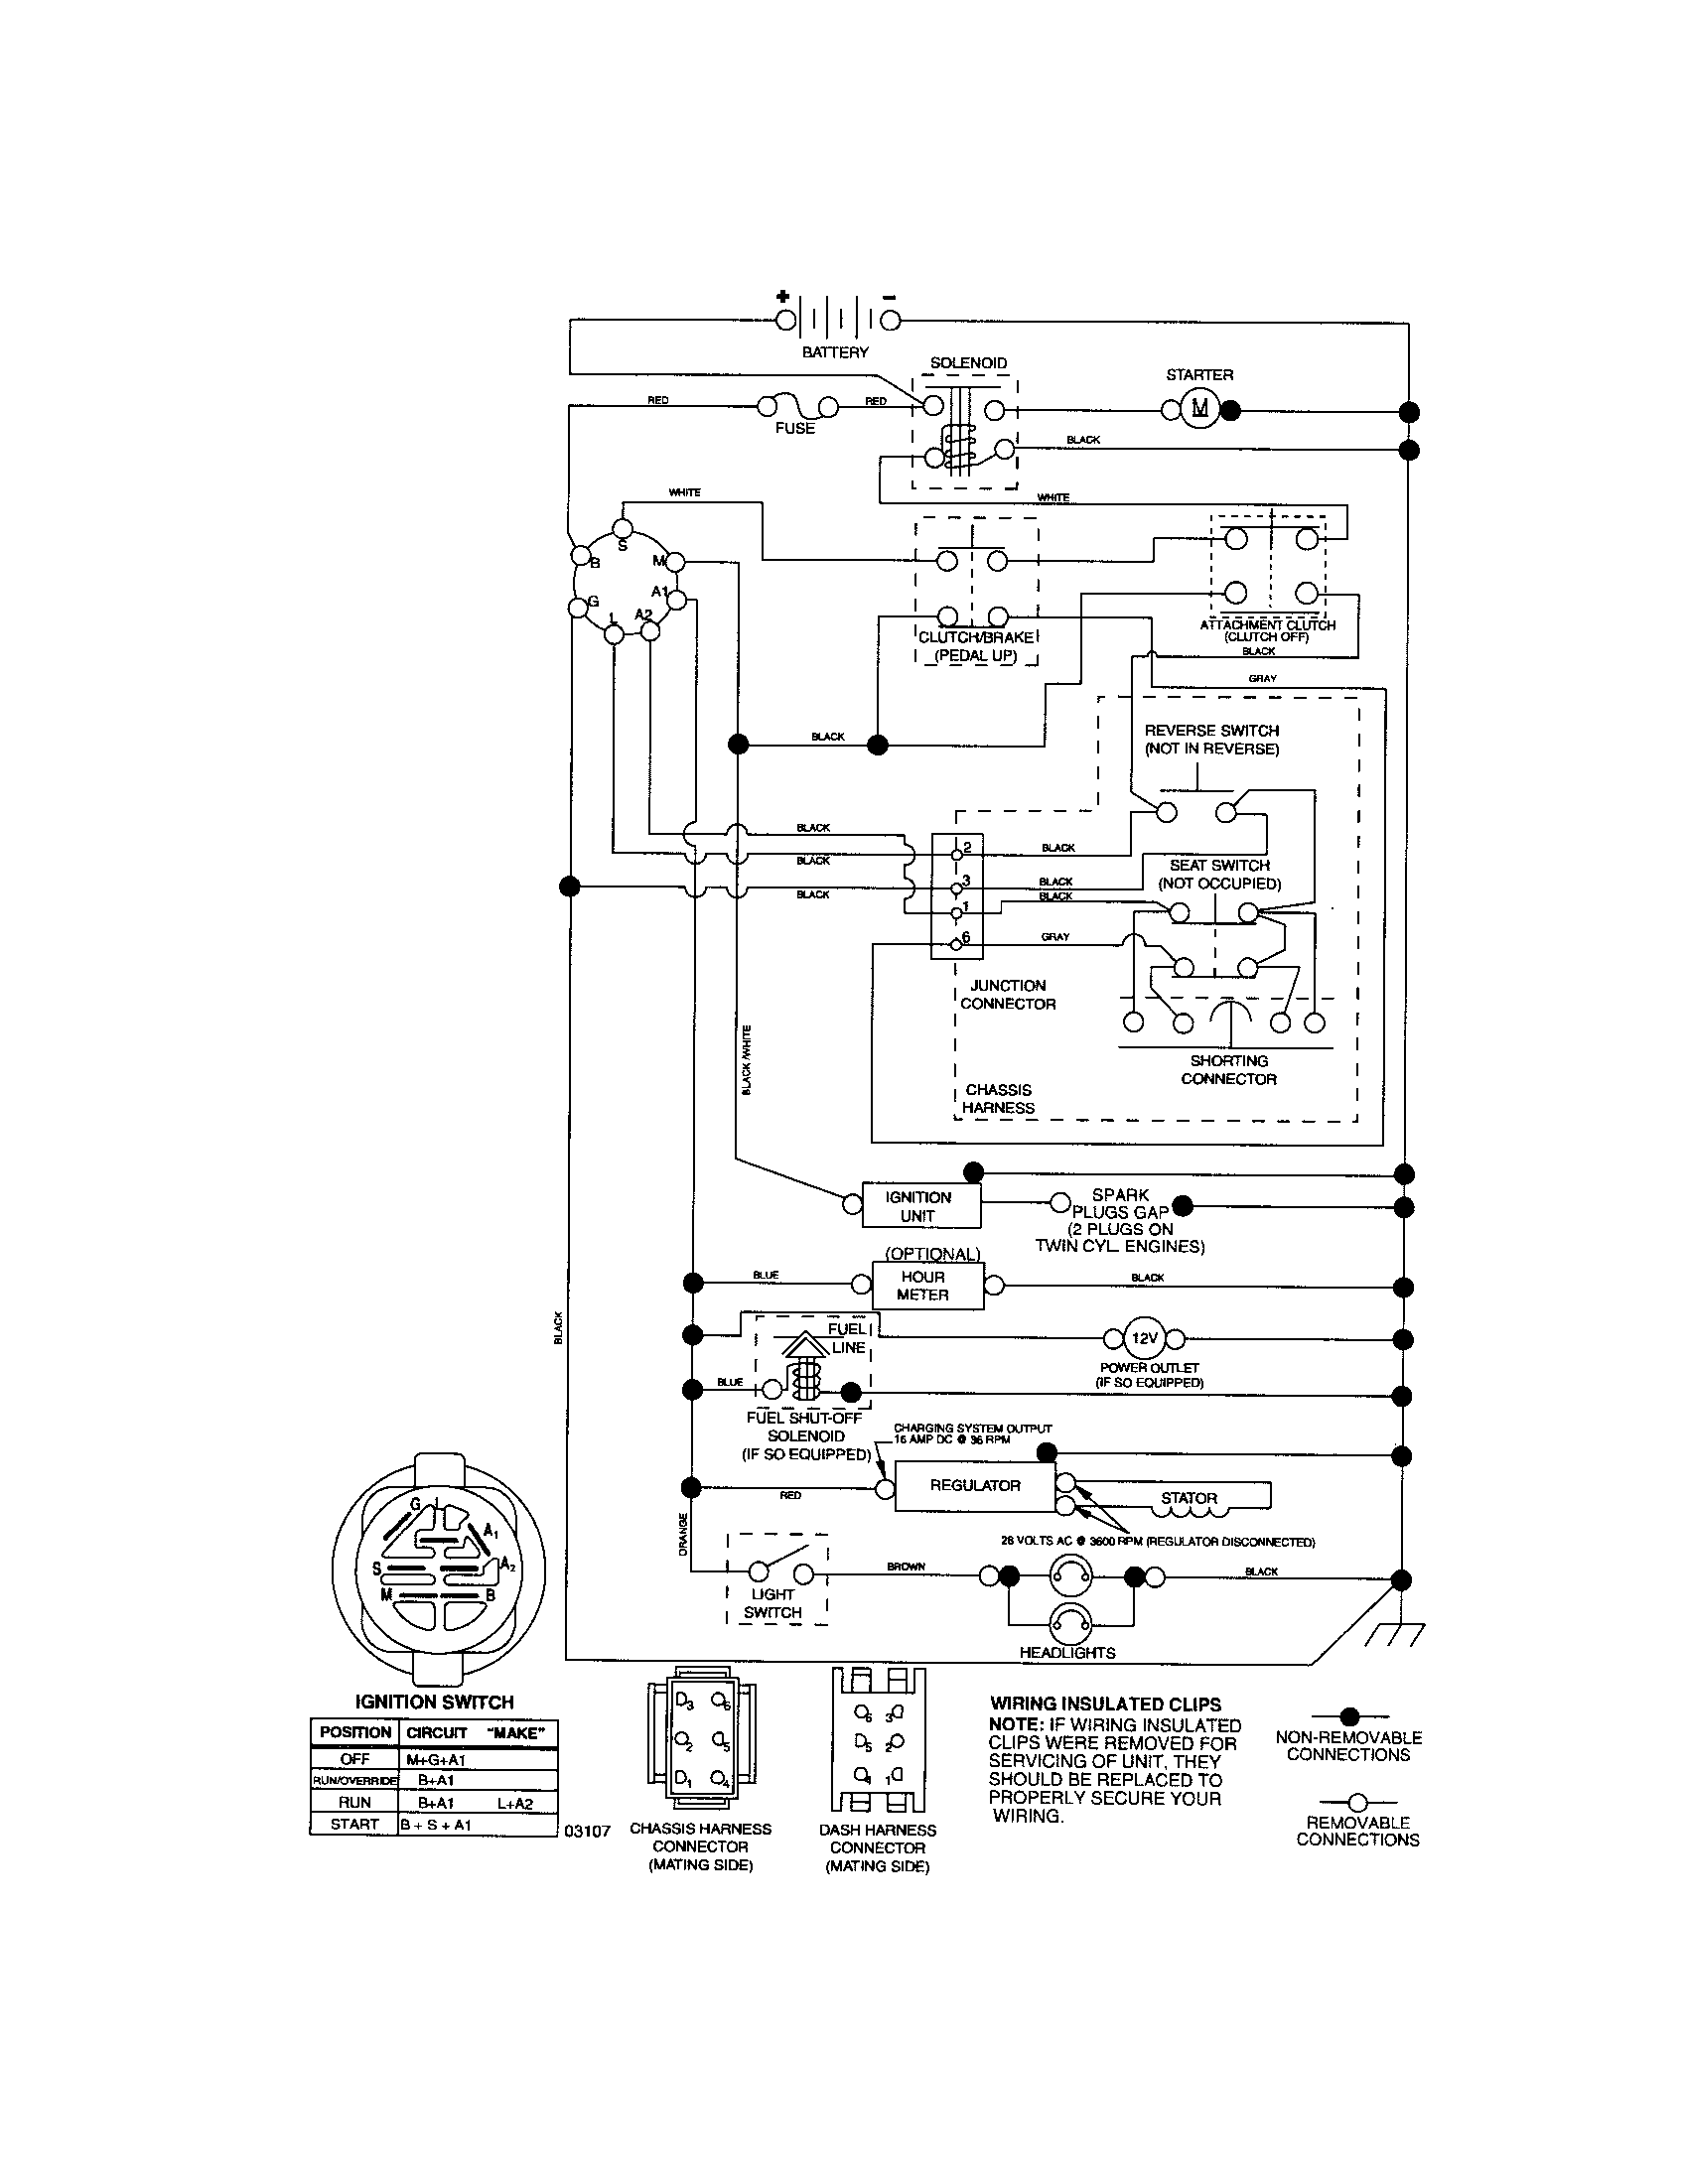 6af5f1447fd13c8443376822ddc1e105 craftsman riding mower electrical diagram wiring diagram  at n-0.co